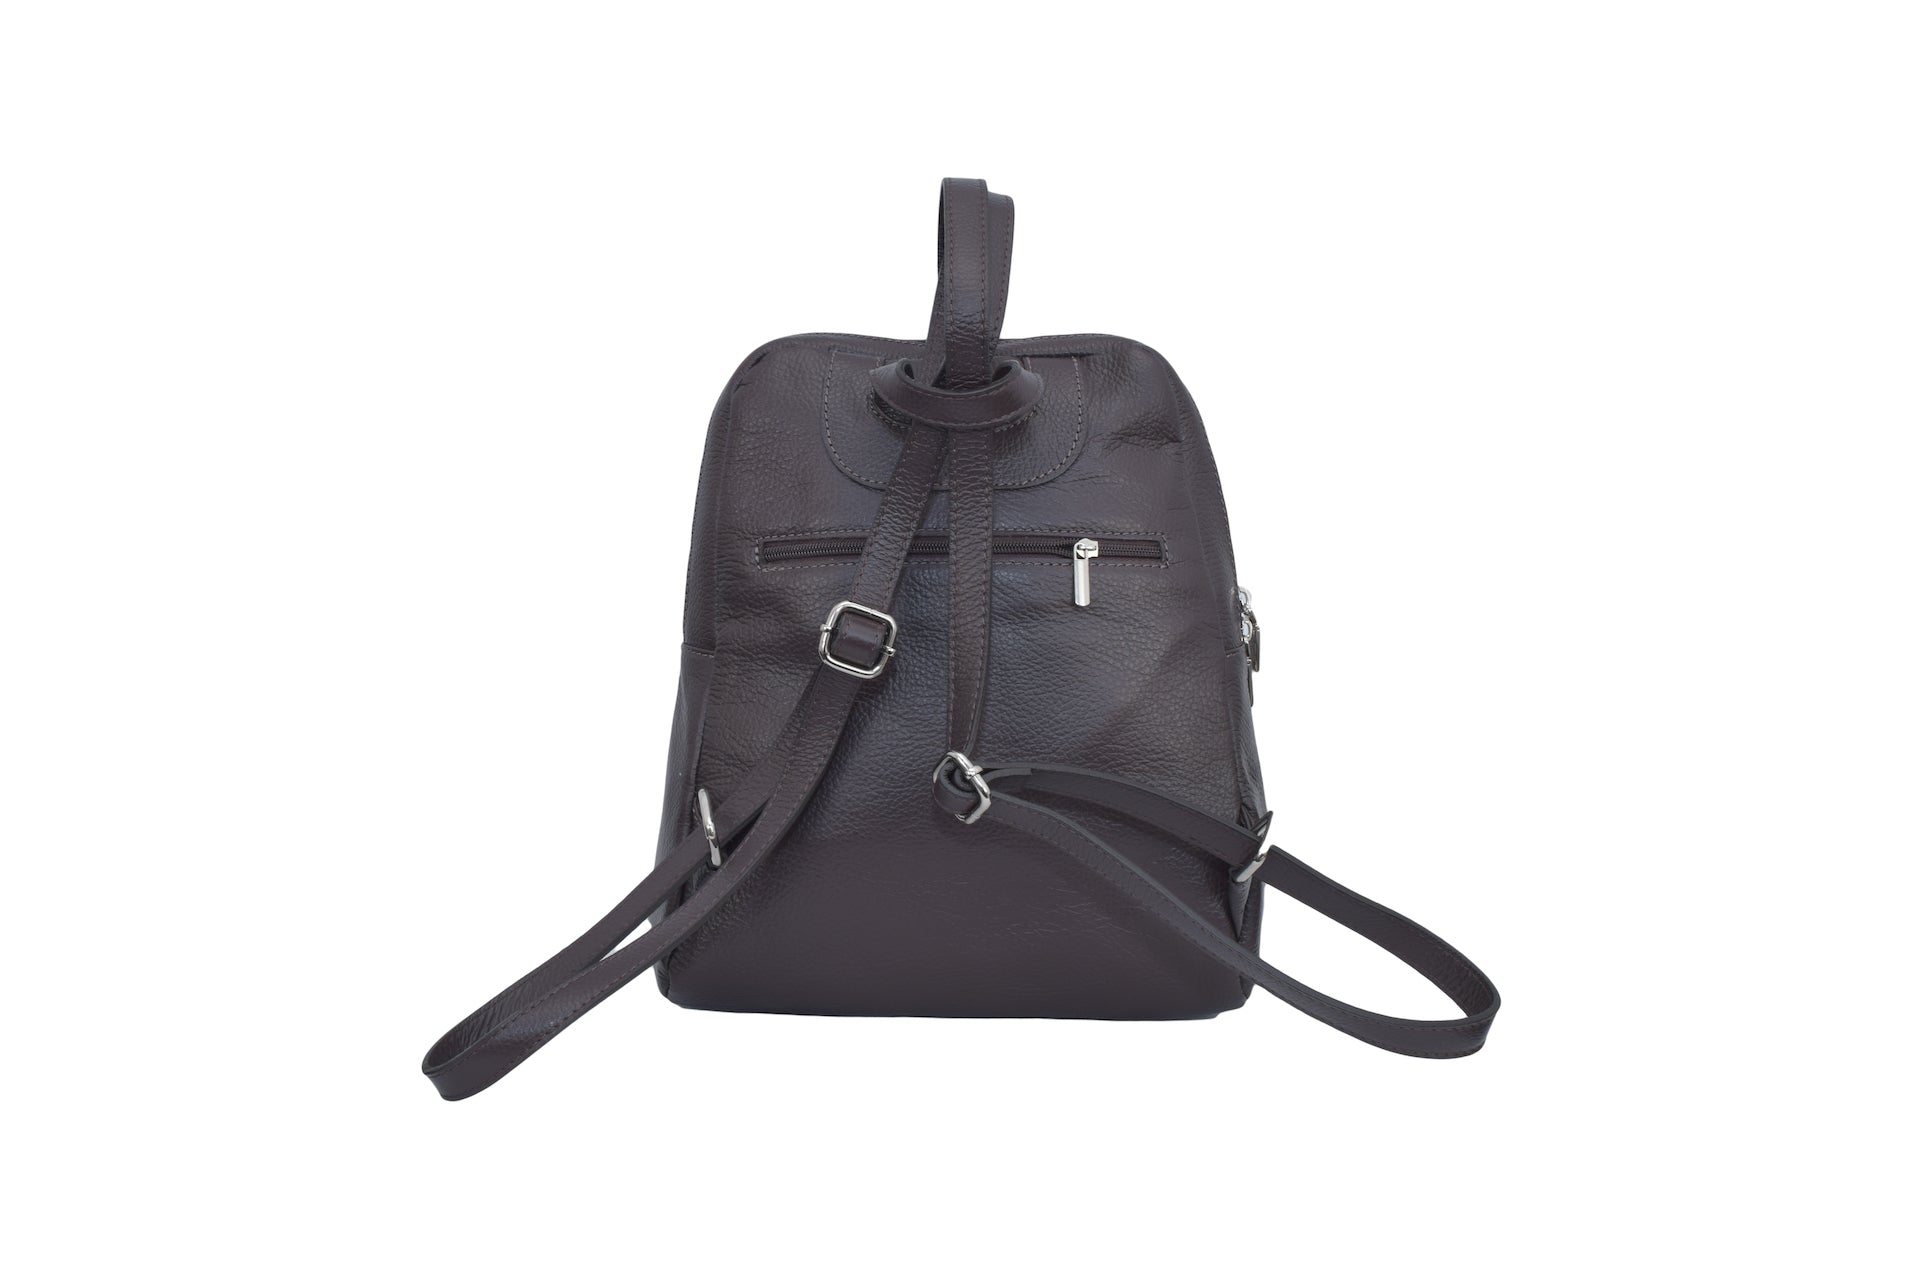 Dark Brown leather backpack with three external compartments and silver hardware